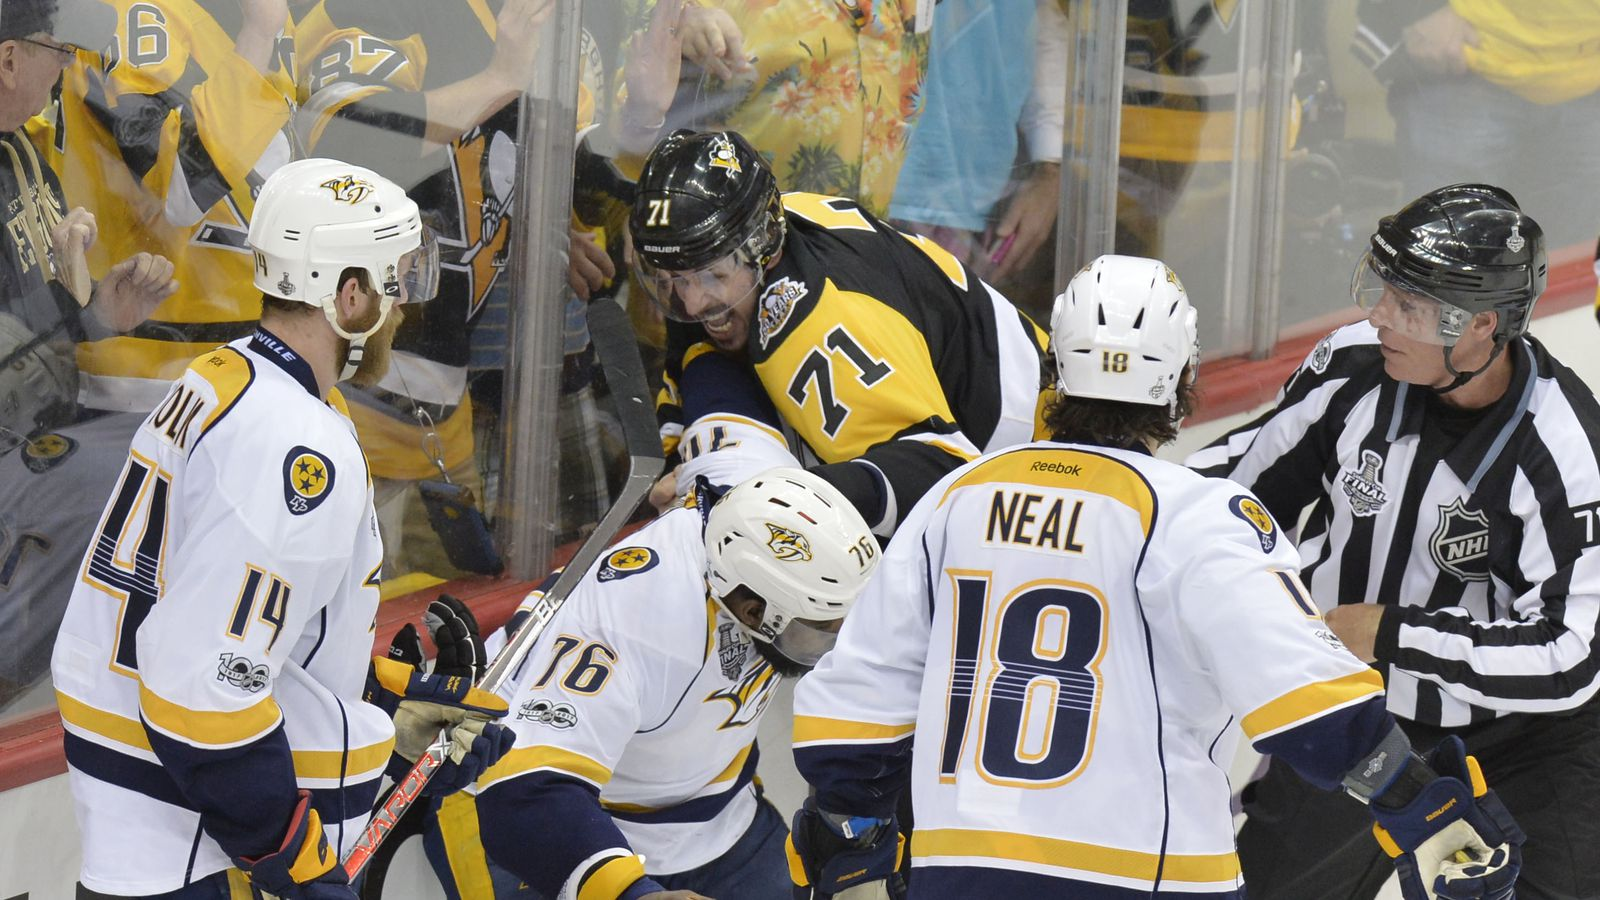 2017 Stanley Cup Final: Pittsburgh Penguins at Nashville Predators Game 3 Preview, How to Watch, Keys to Victory